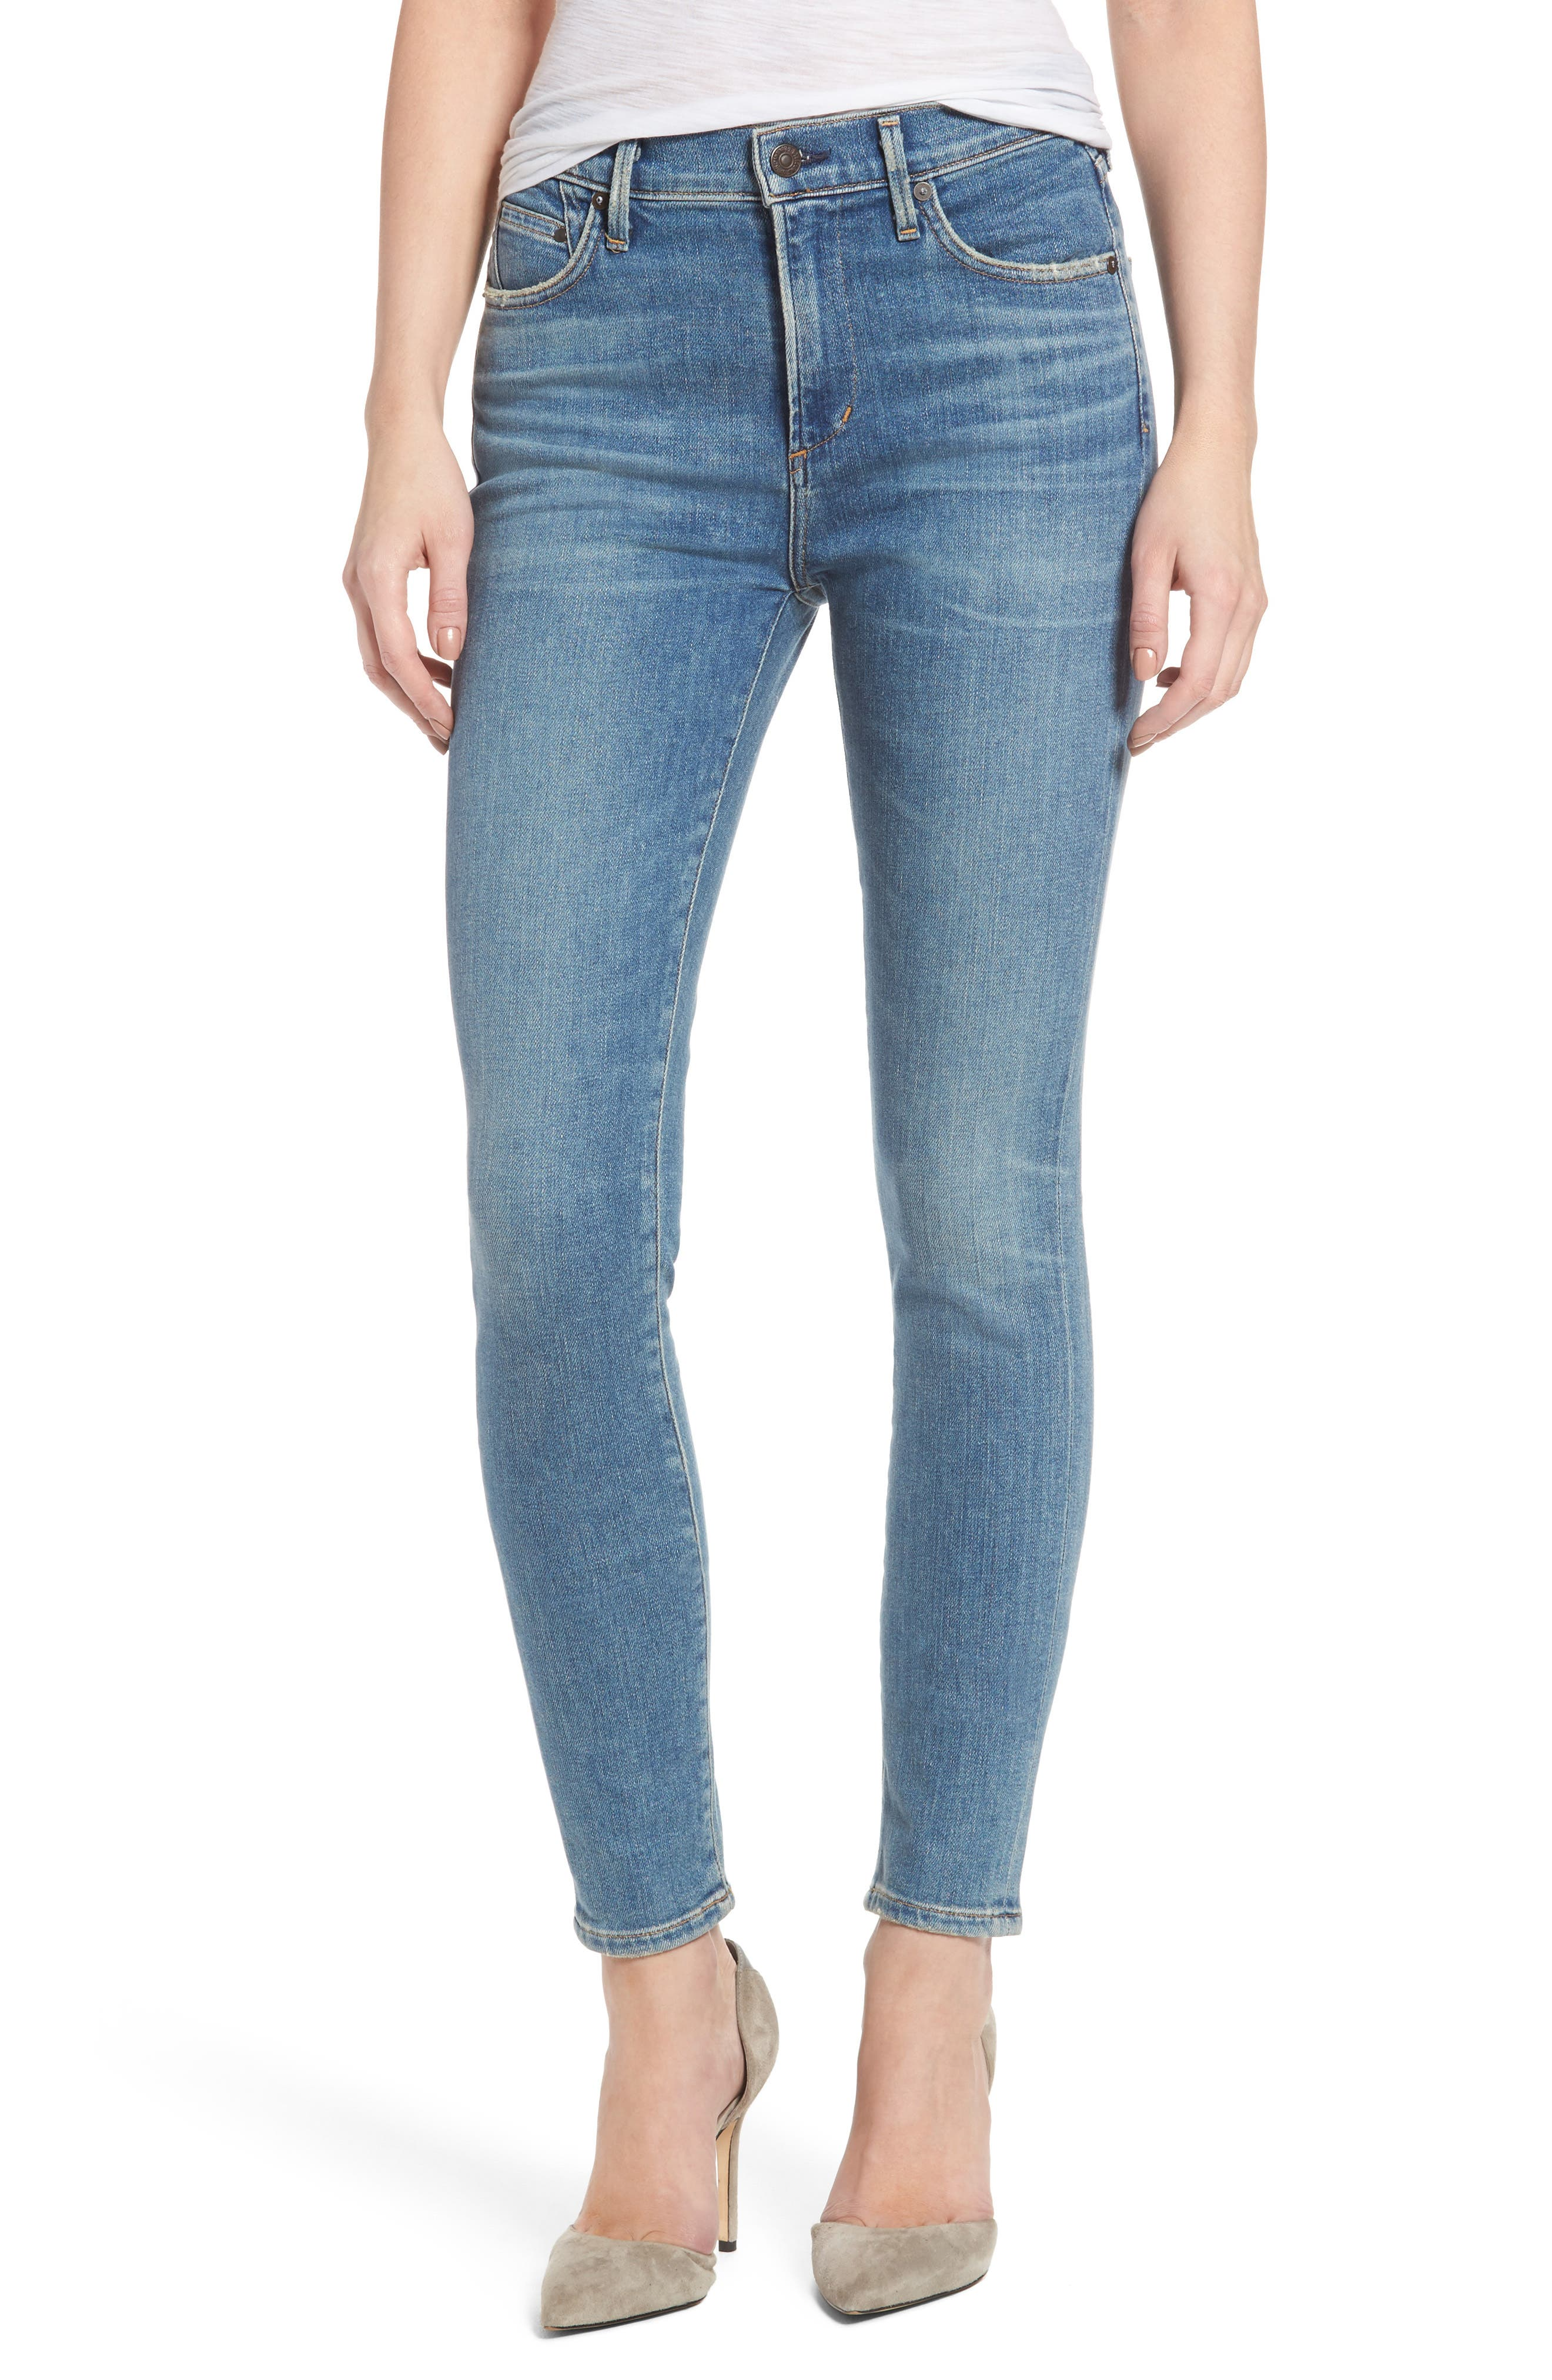 Rocket High Waist Skinny Jeans,                         Main,                         color,